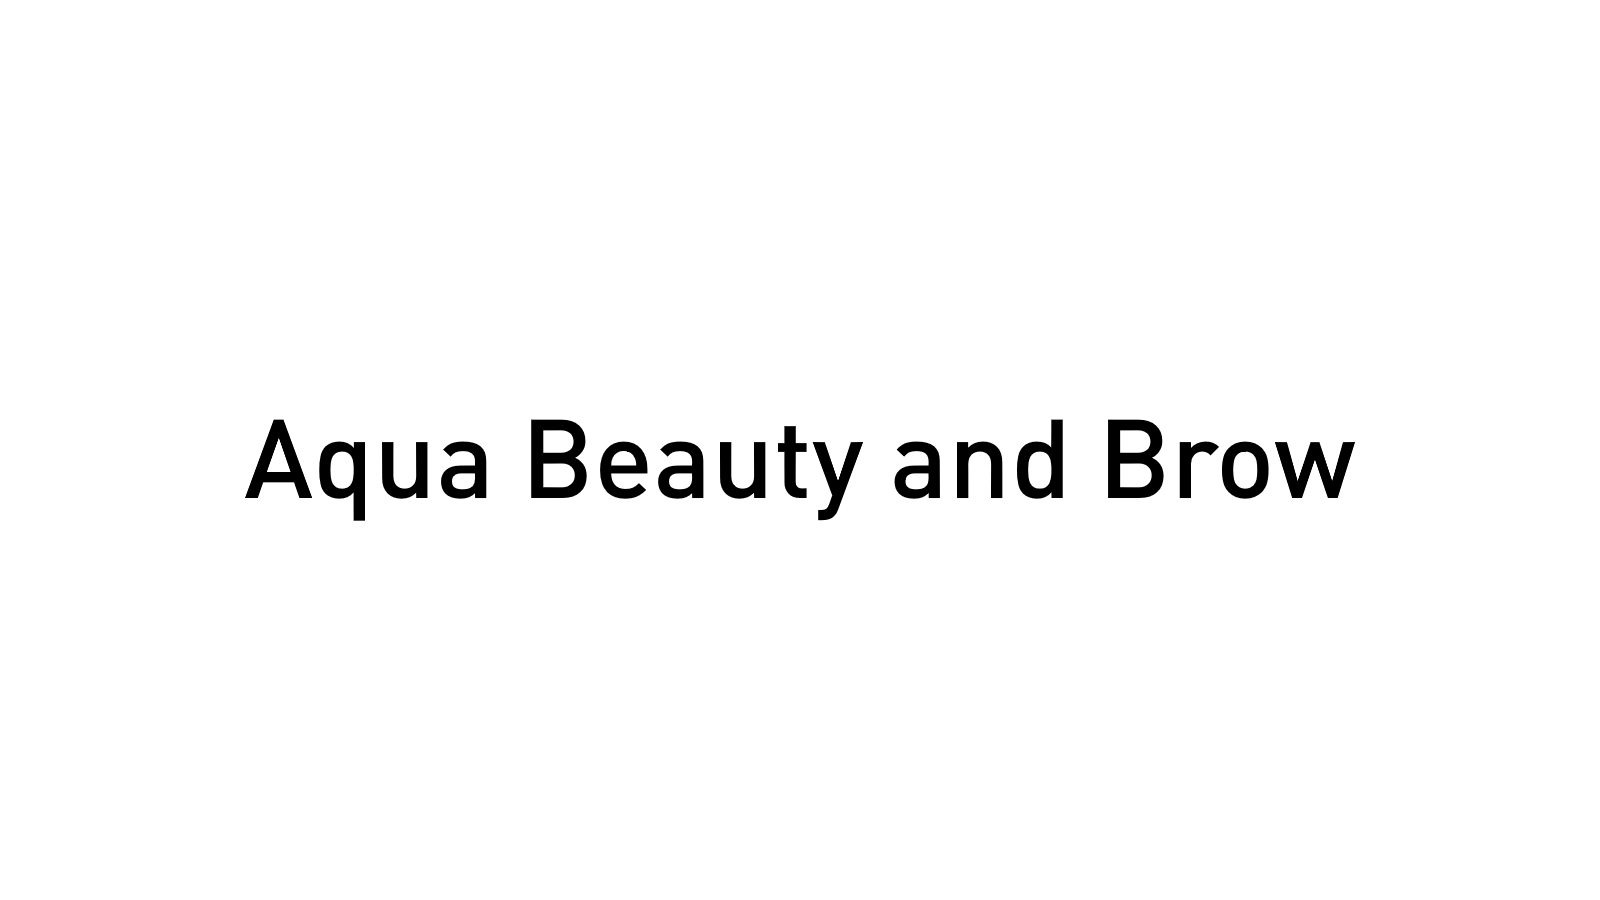 Aqua Beauty and Brow- Temporarily Closed